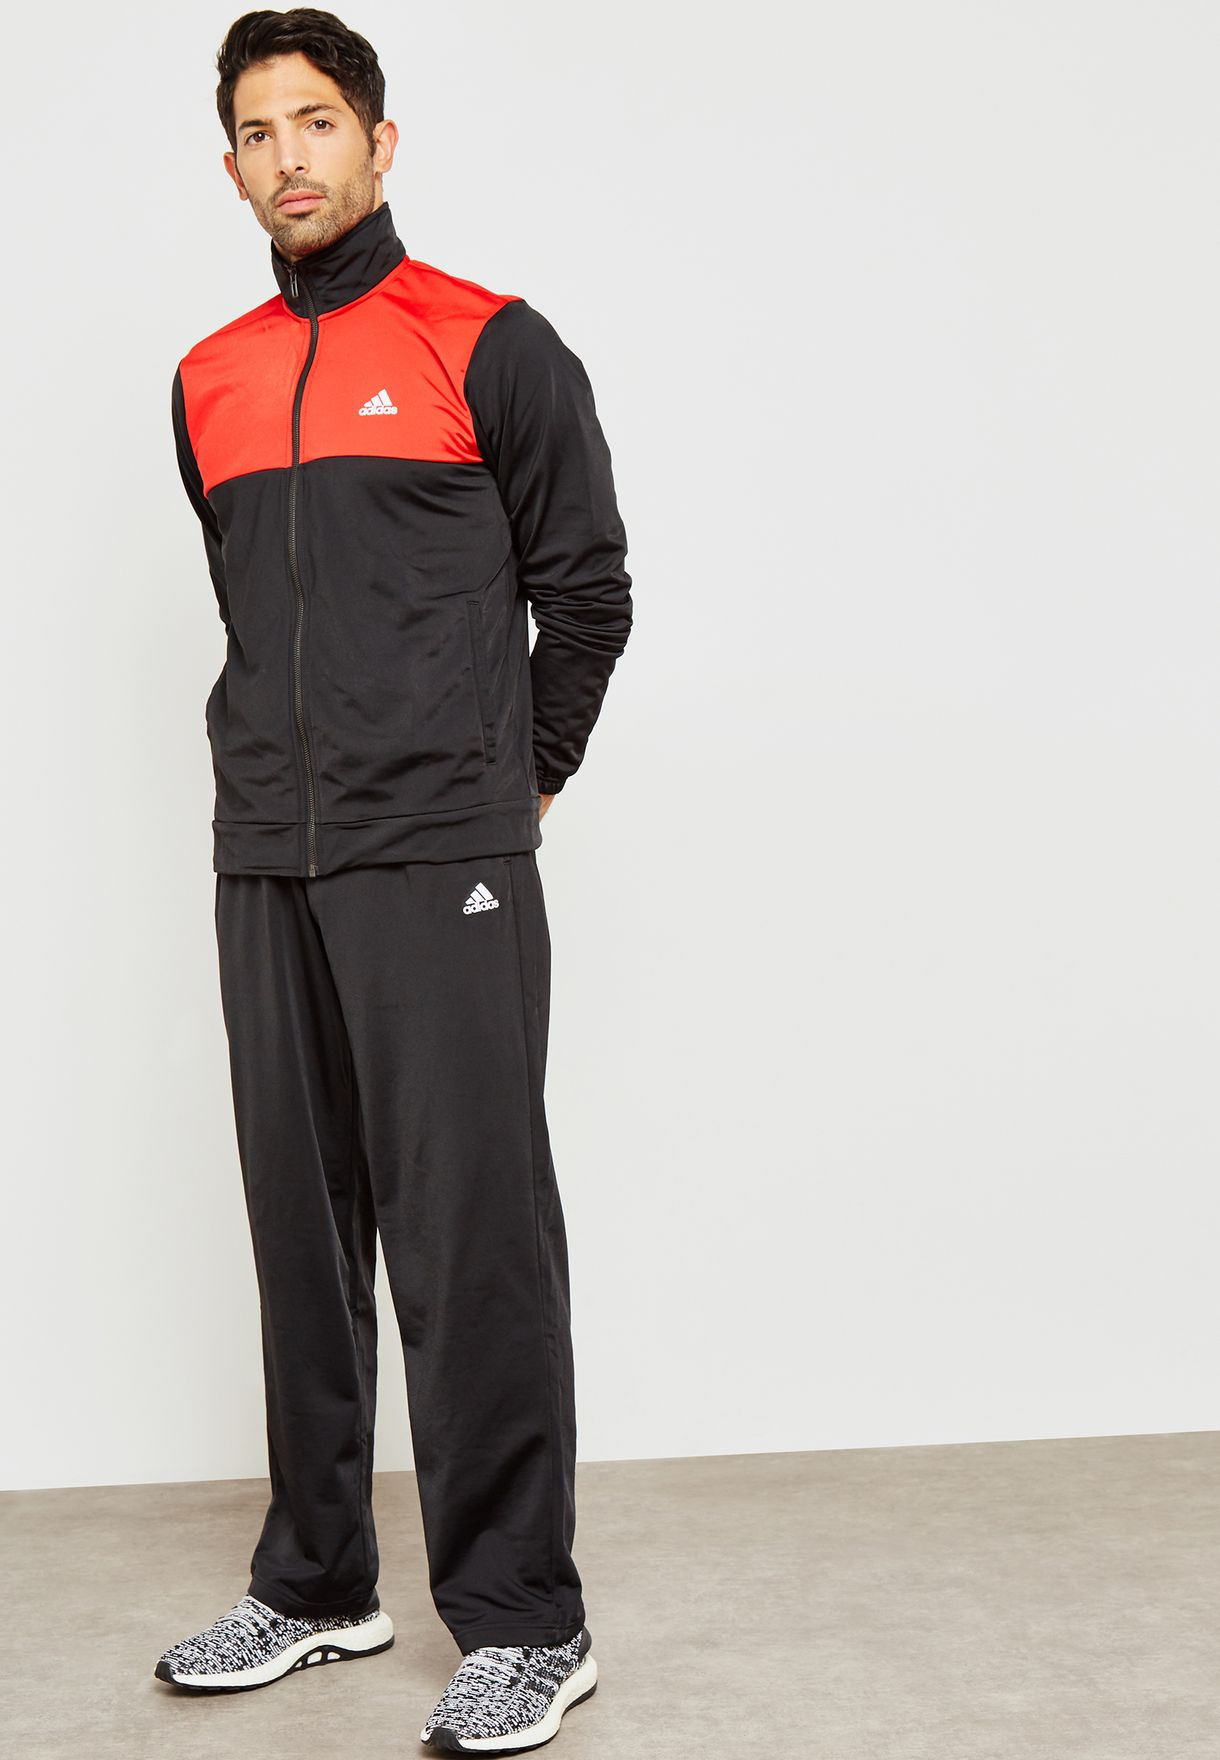 ricevente Spinoso preoccupazione  Buy adidas multicolor Back 2 Basics Tracksuit for Men in MENA, Worldwide |  CY2308